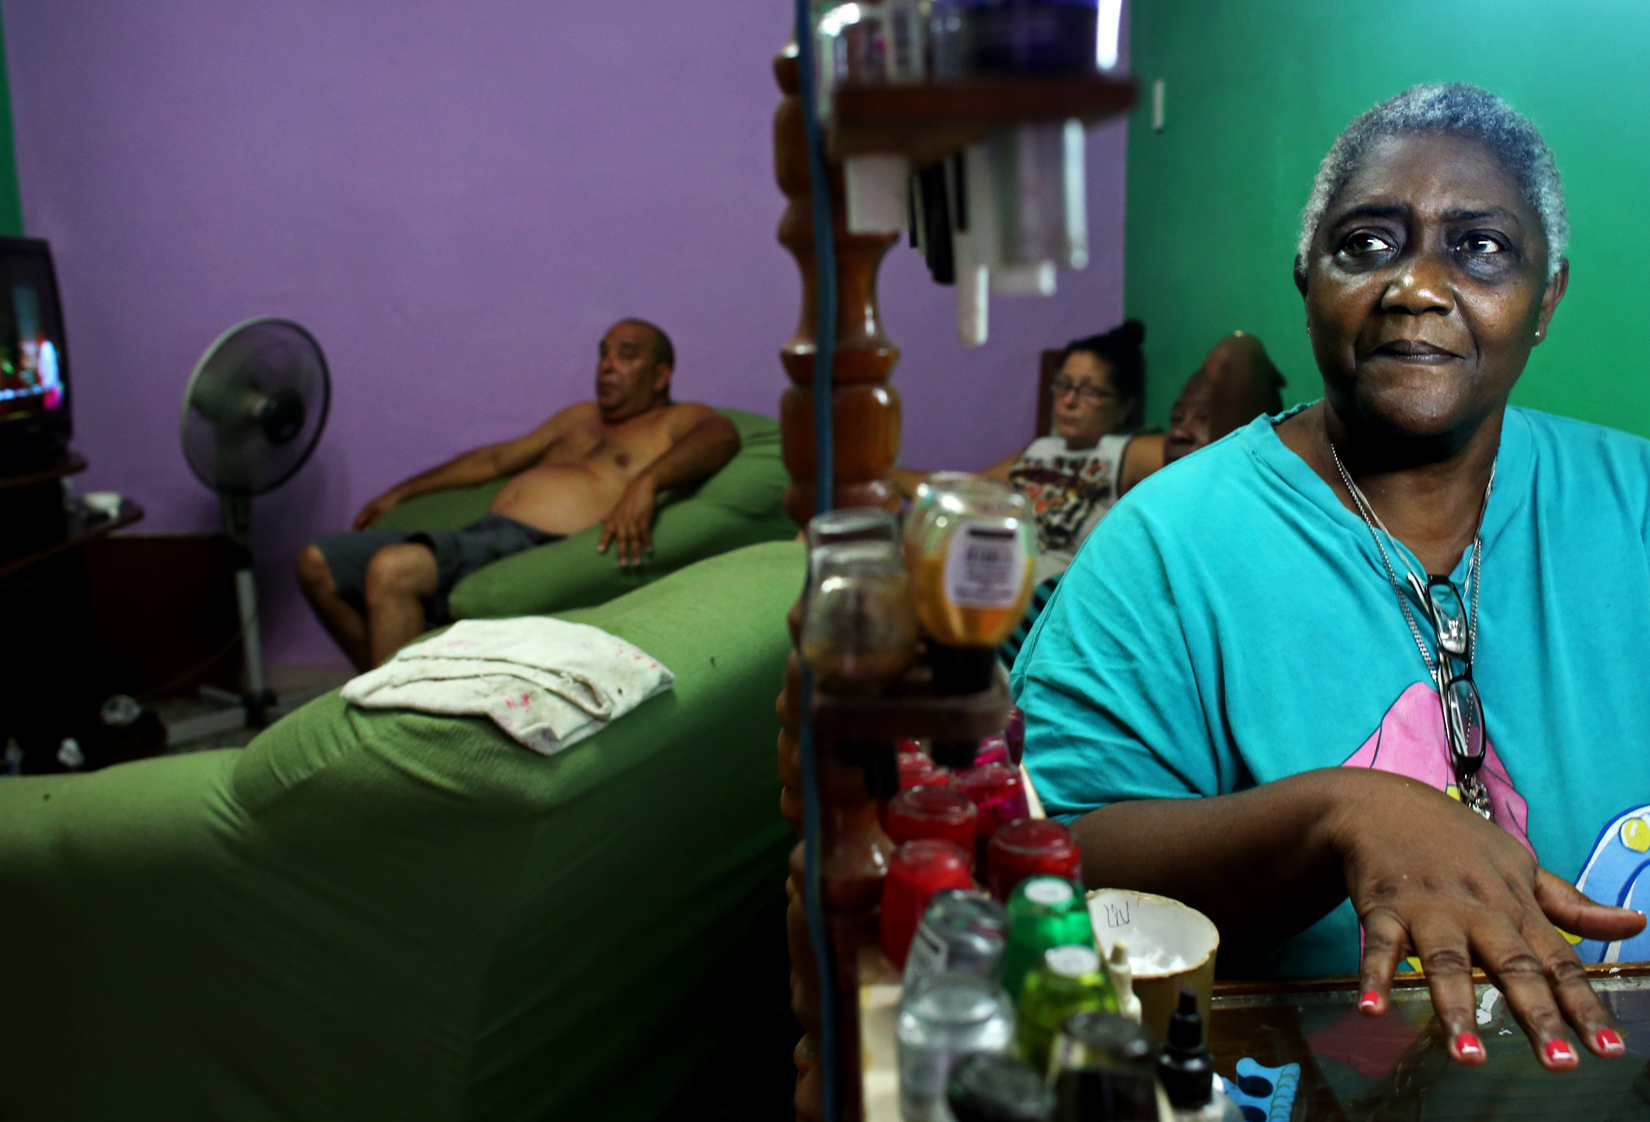 Retiree Lucilla Sulueta Cuesta, 66, gets her nails done by Liu Sanchez, 24, (not seen,) who works as a manicurist cuentaproprista (private business entrepreneur, whose practice wasn't allowed in Bulgaria and most of Eastern Europe until the collapse of communism,) in the Havana Vieja neighborhood of Havana, Cuba.   Since privatization was first allowed within Cuba's state-owned socialist system in the mid-70s, the requirements for those allowed to be cuentapropistas have fluctuated from restrictive to less so - the latter in the Raúl Castro era of 2008 and beyond. But a clear disincentive to private business expansion remains: if payroll surpasses 5 employees or a $2,000 yearly profit, taxes increase disproportionately (from 15% to 50% in case of the latter.)Cuba, a place of much recent conversation, is a country whose politics and way of life parallel much of my childhood in Bulgaria. This is 2015's continuation to my project on democracy + communism, started last year on the 25th anniversary of the fall of the Berlin Wall - the event that gave opportunity to Eastern Europeans like me to immigrate to the Western world. These are the ways in which Cuba has transported me to pre- and post-1989 Bulgaria.